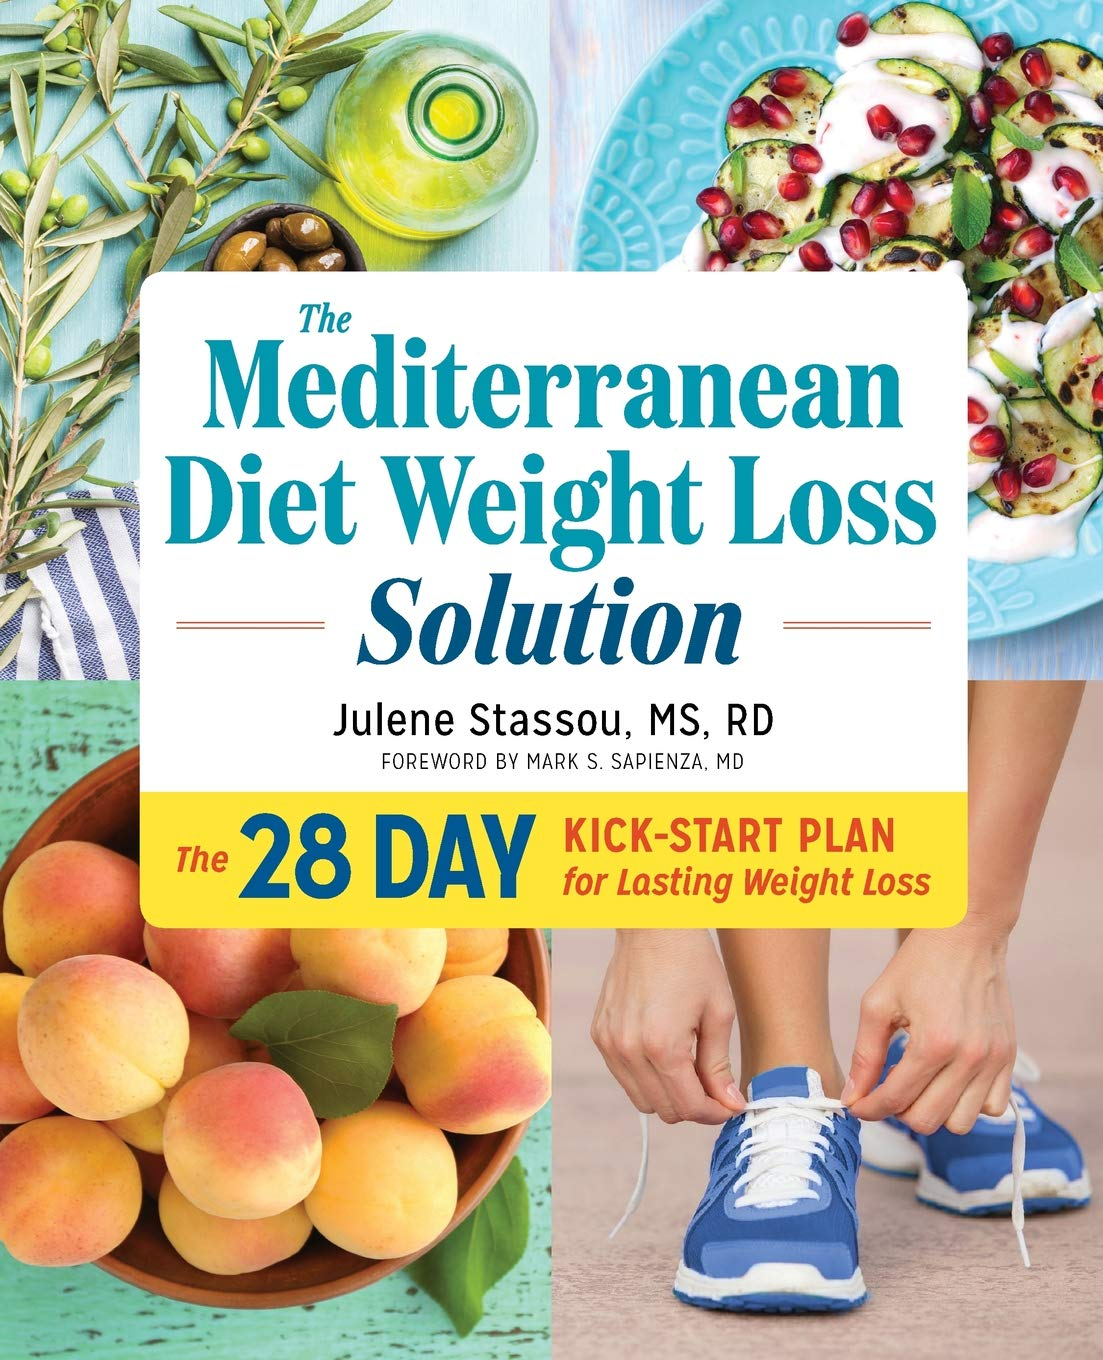 The Mediterranean Diet Weight Loss Solution: The